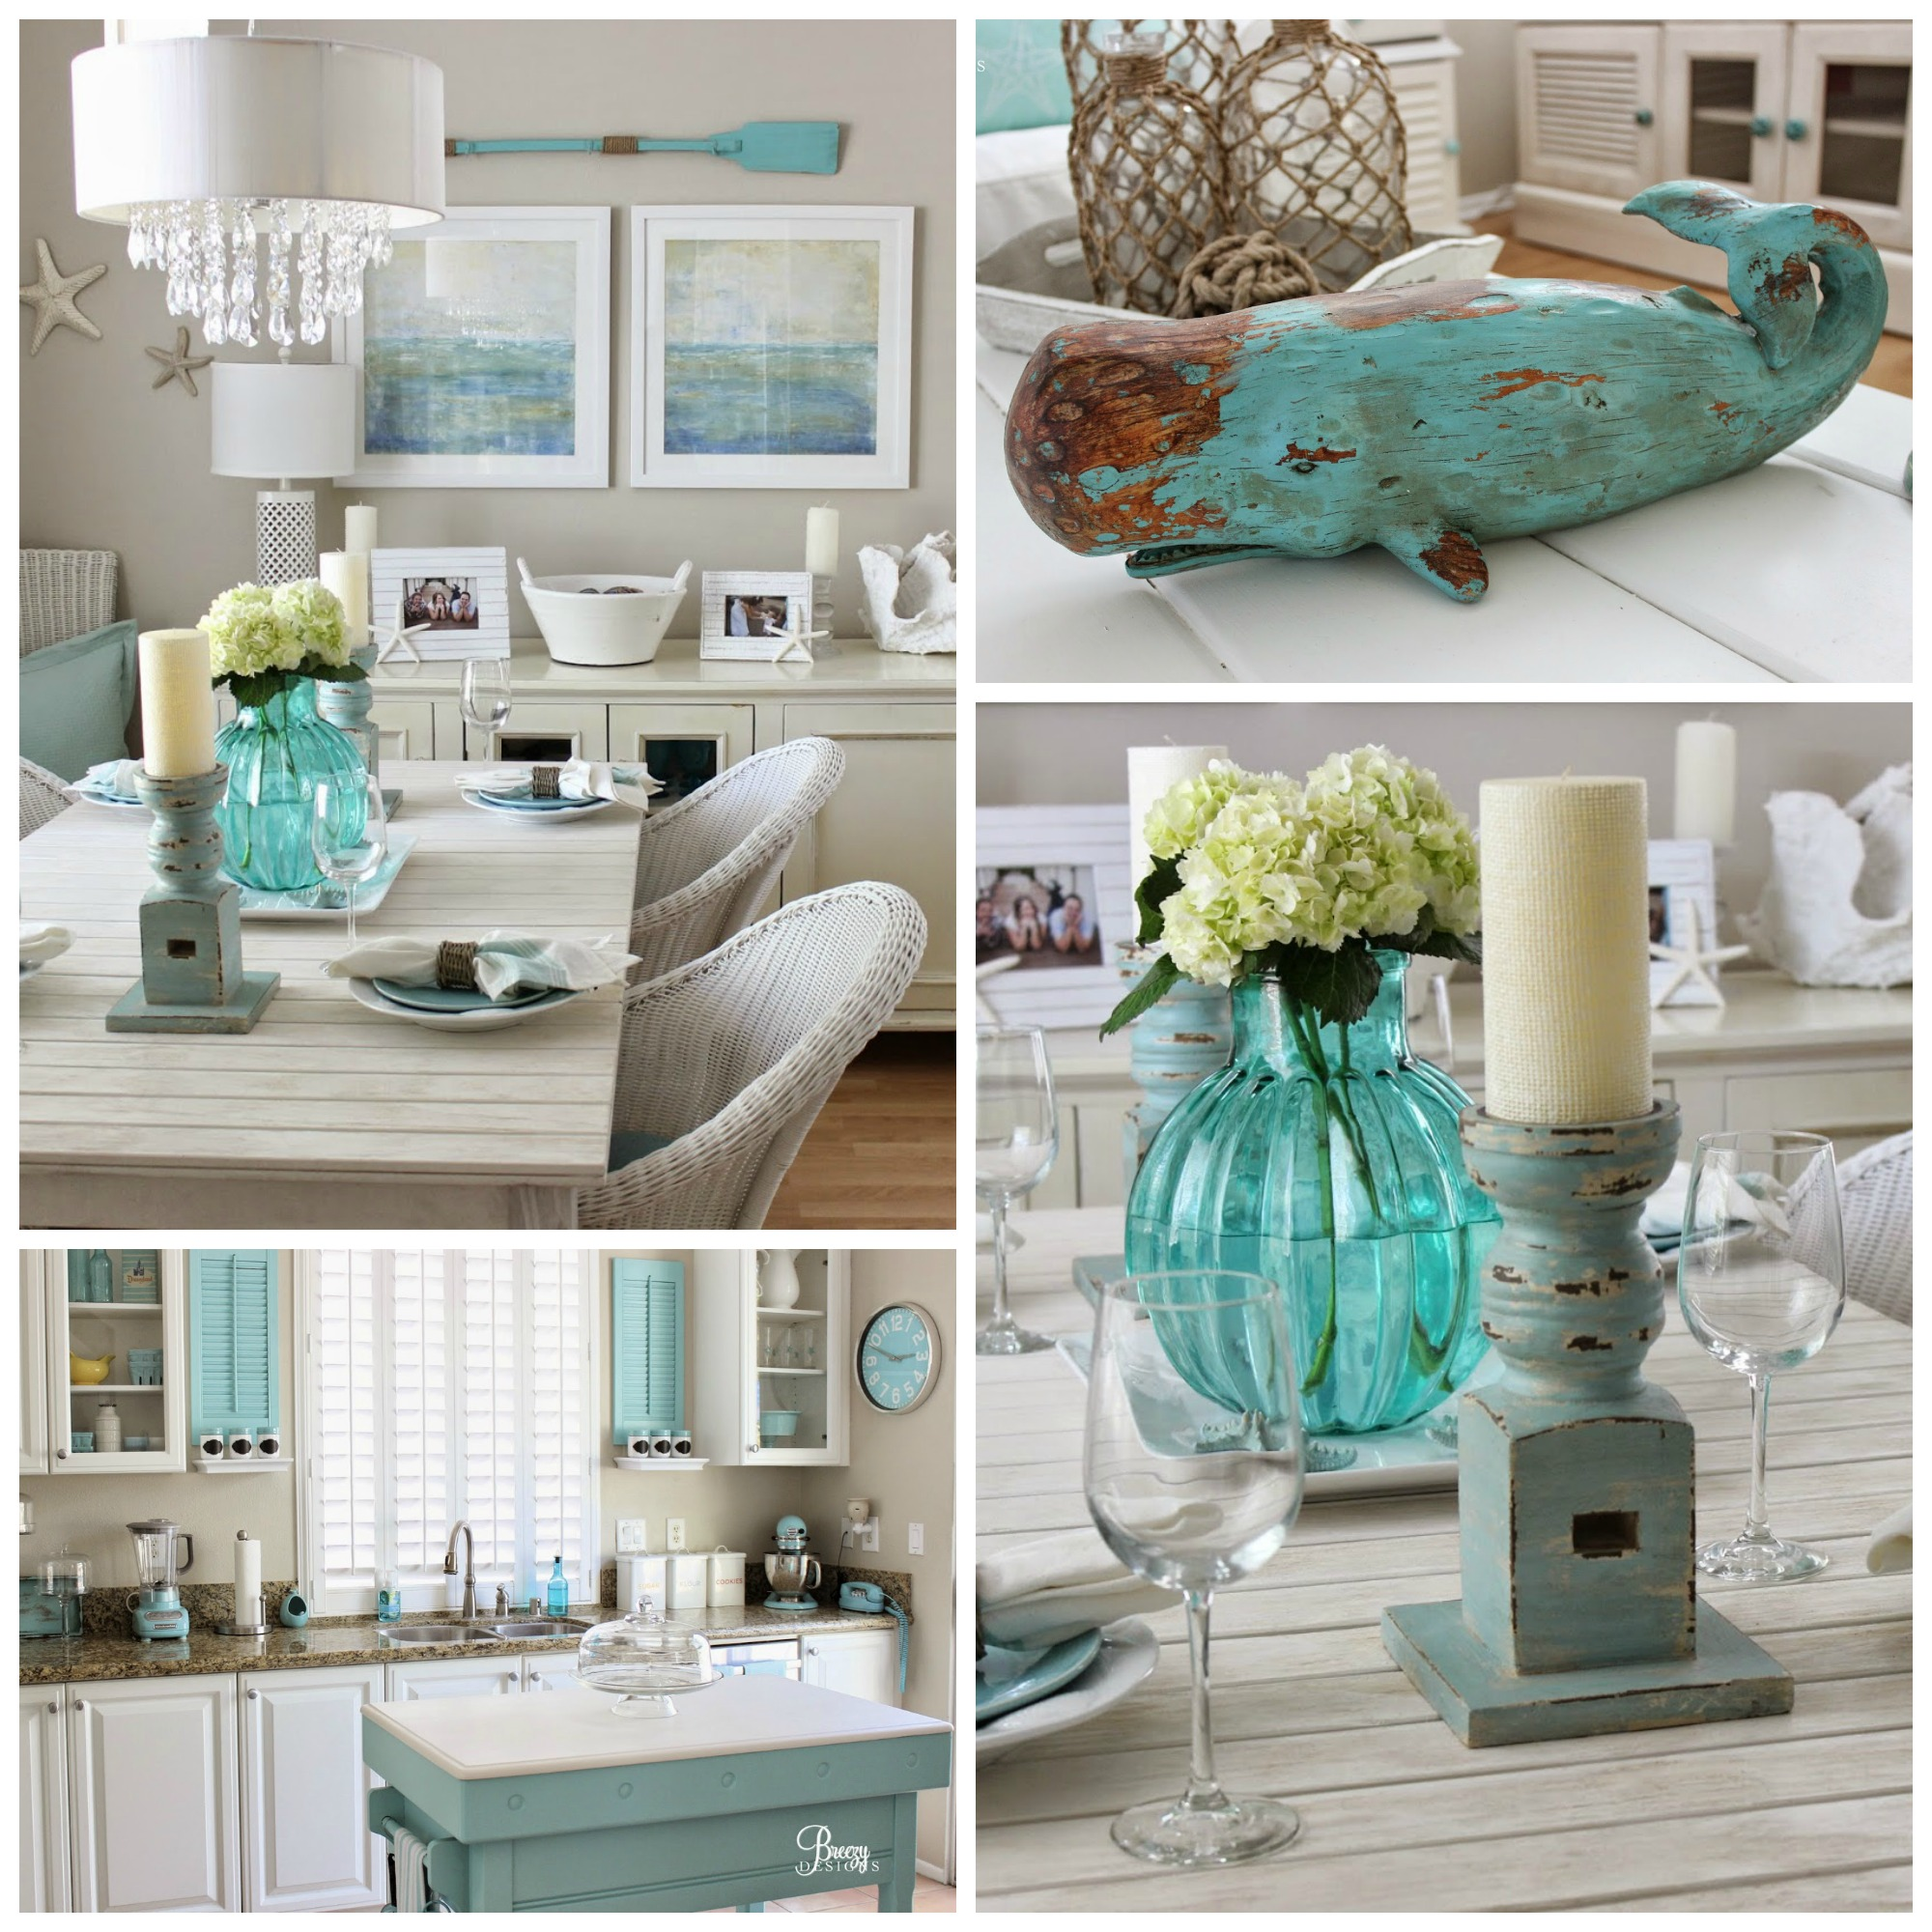 Beach chic coastal cottage home tour with breezy design for Art for house decoration